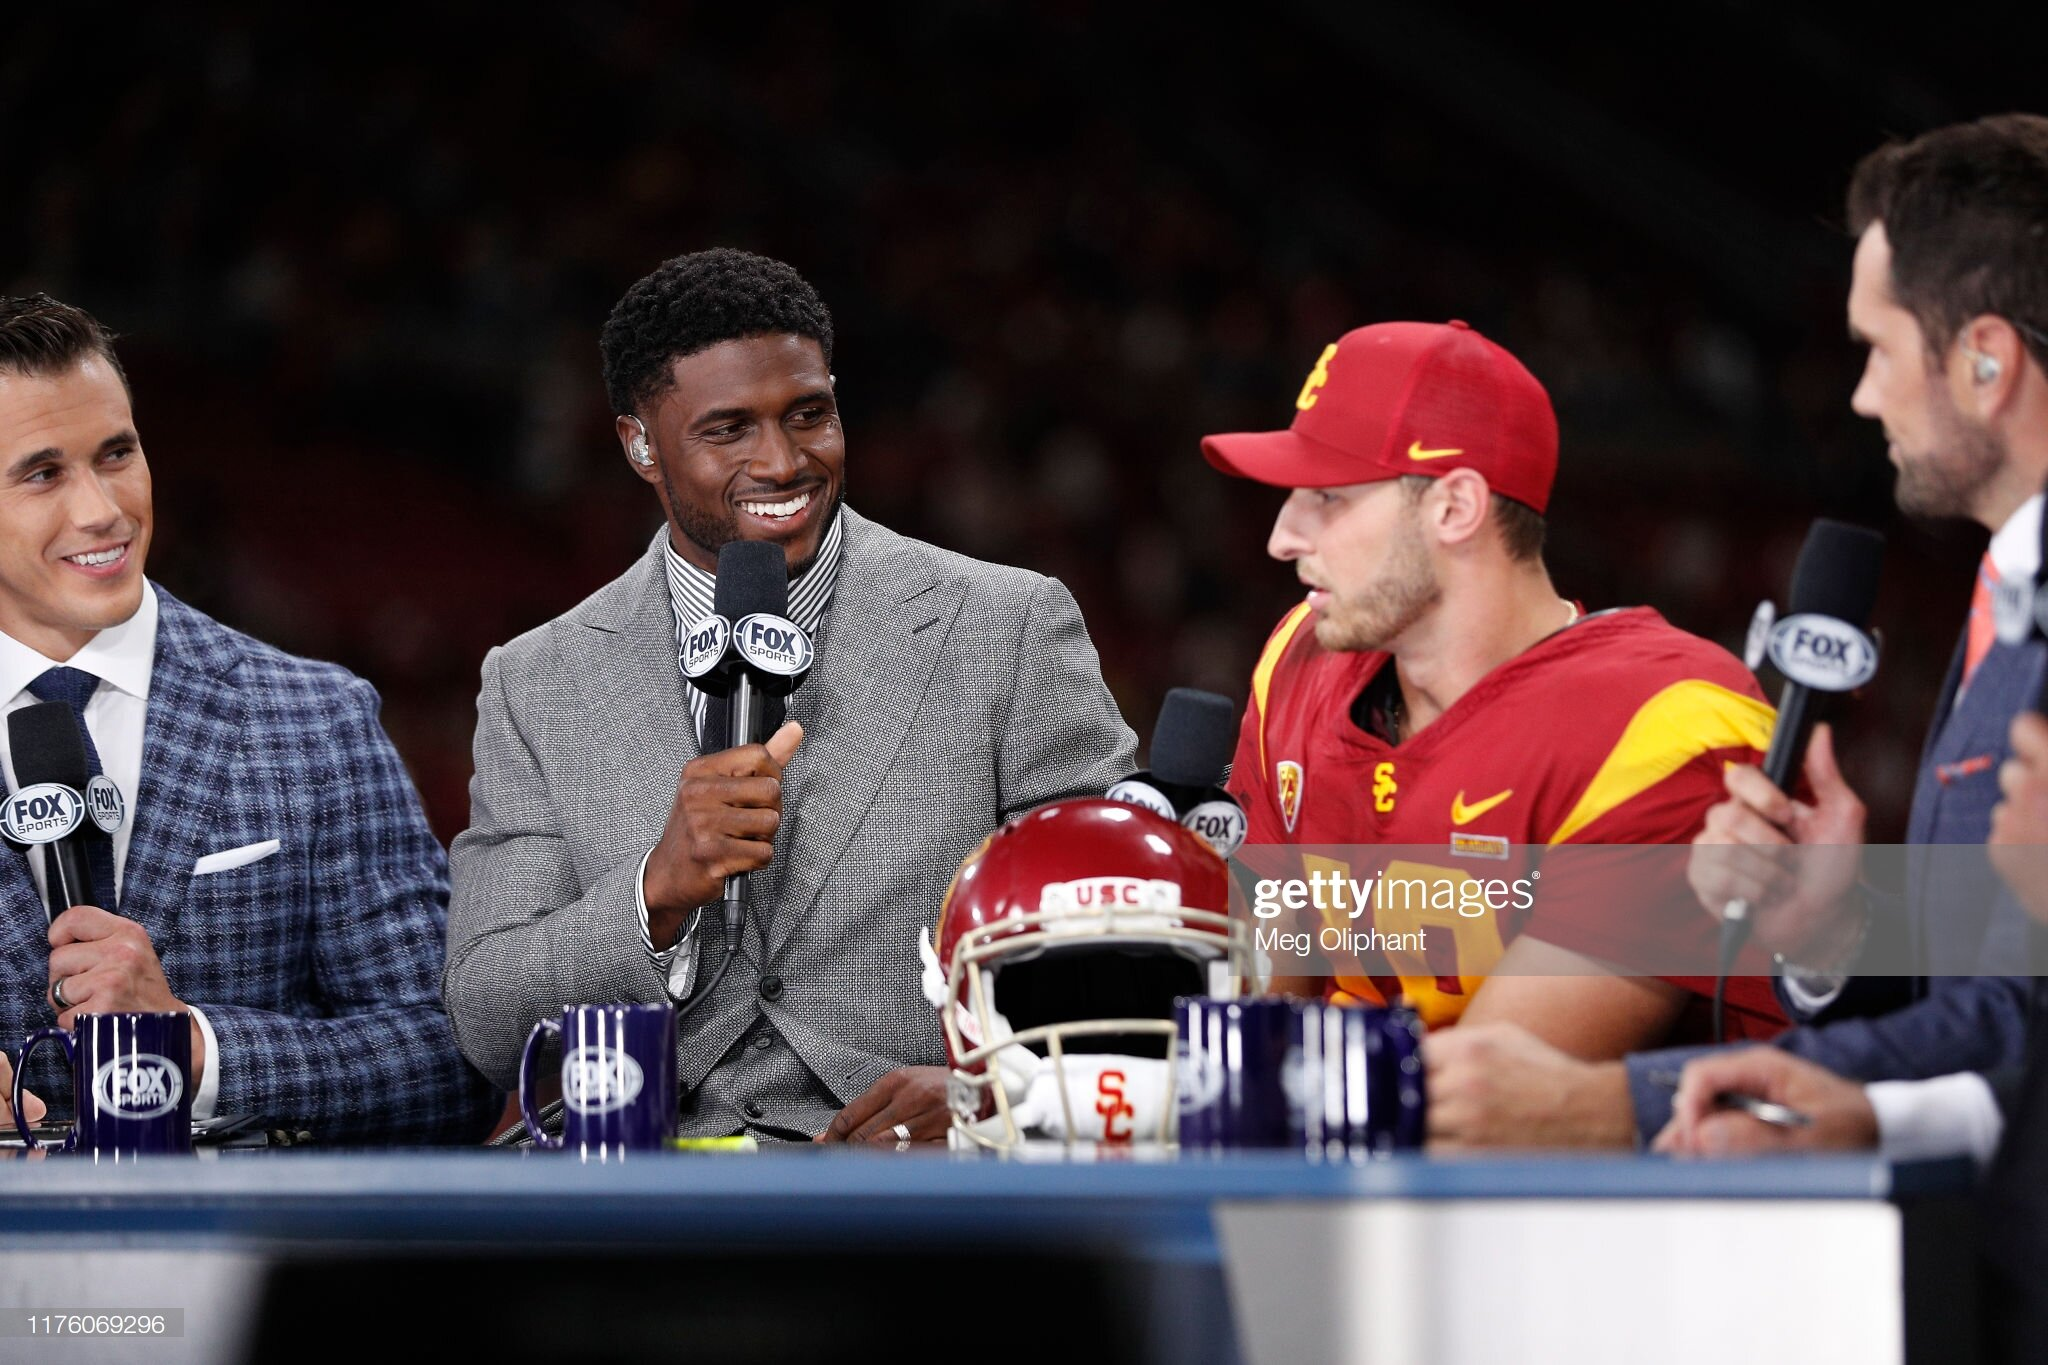 Fox Sports commentators Brady Quinn, Reggie Bush, and Matt Leinart congratulating Matt Fink.